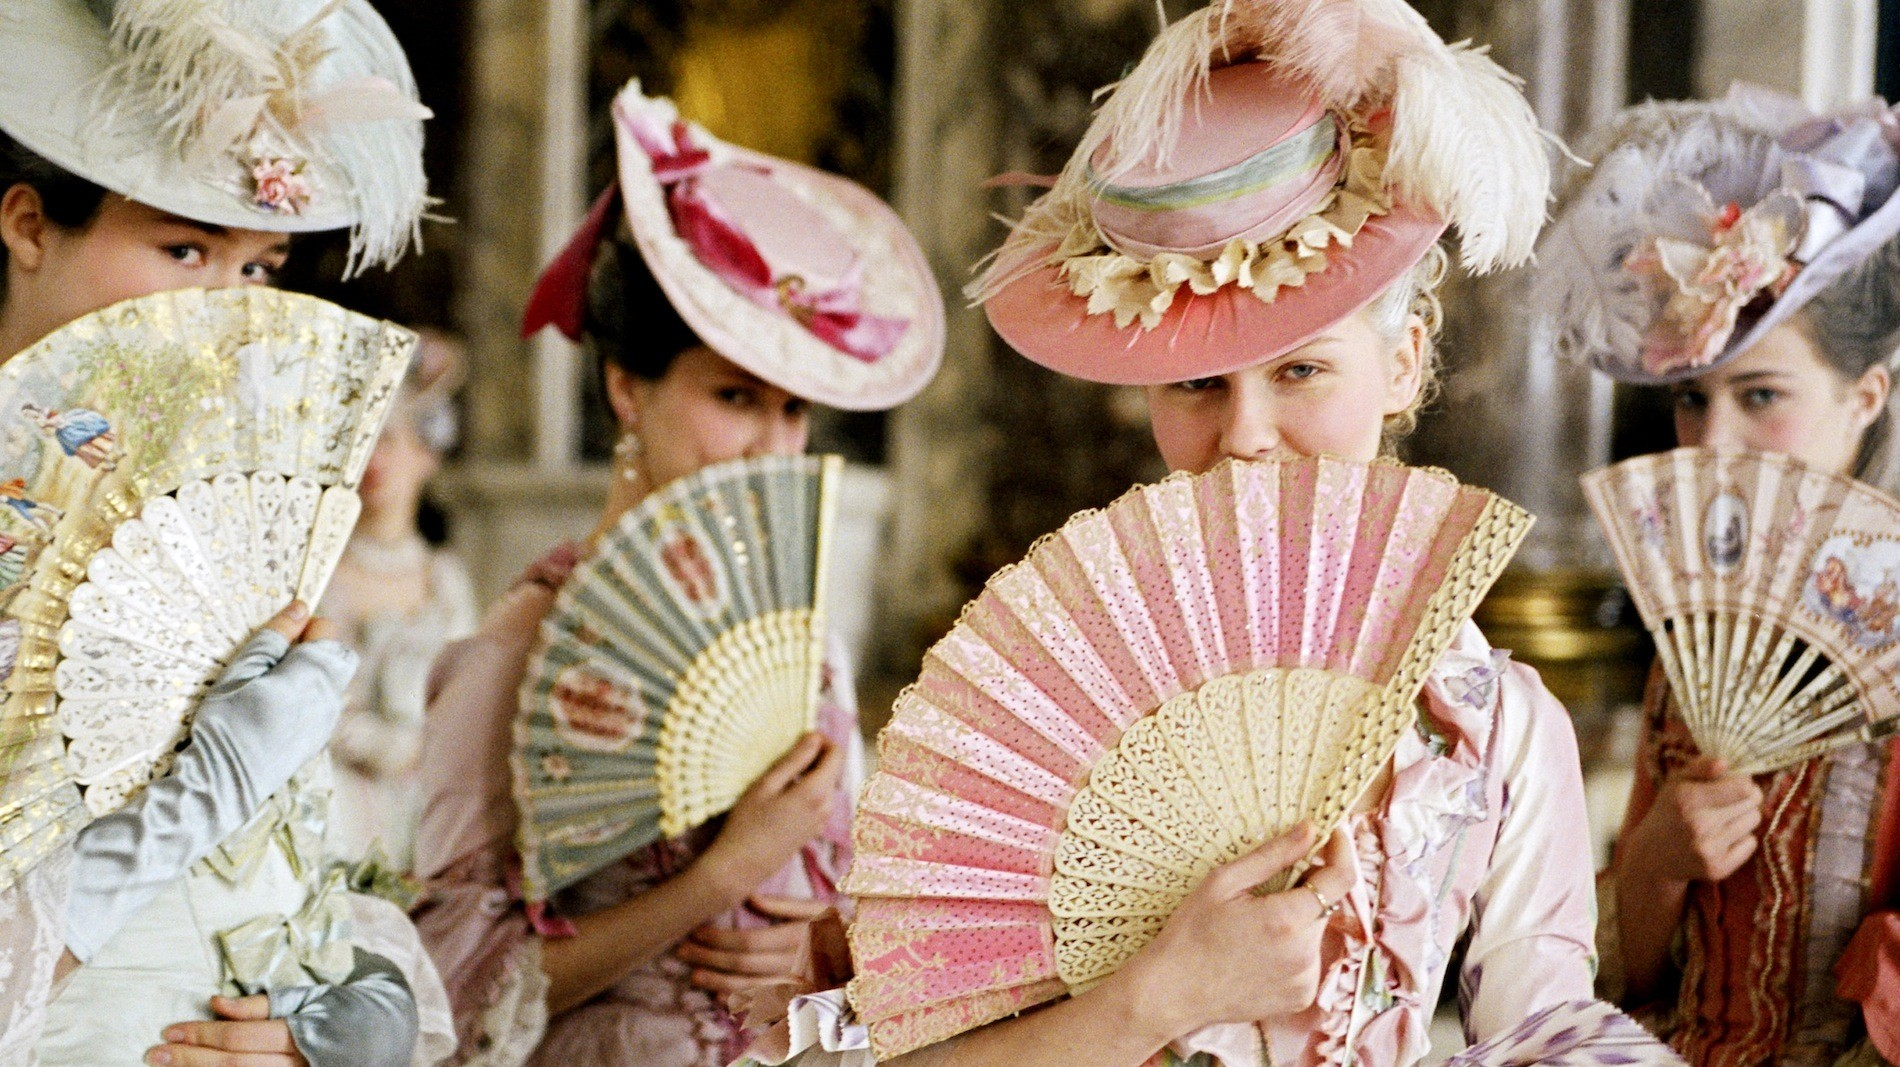 revisiting 'marie antoinette's' complicated portrait of girlhood